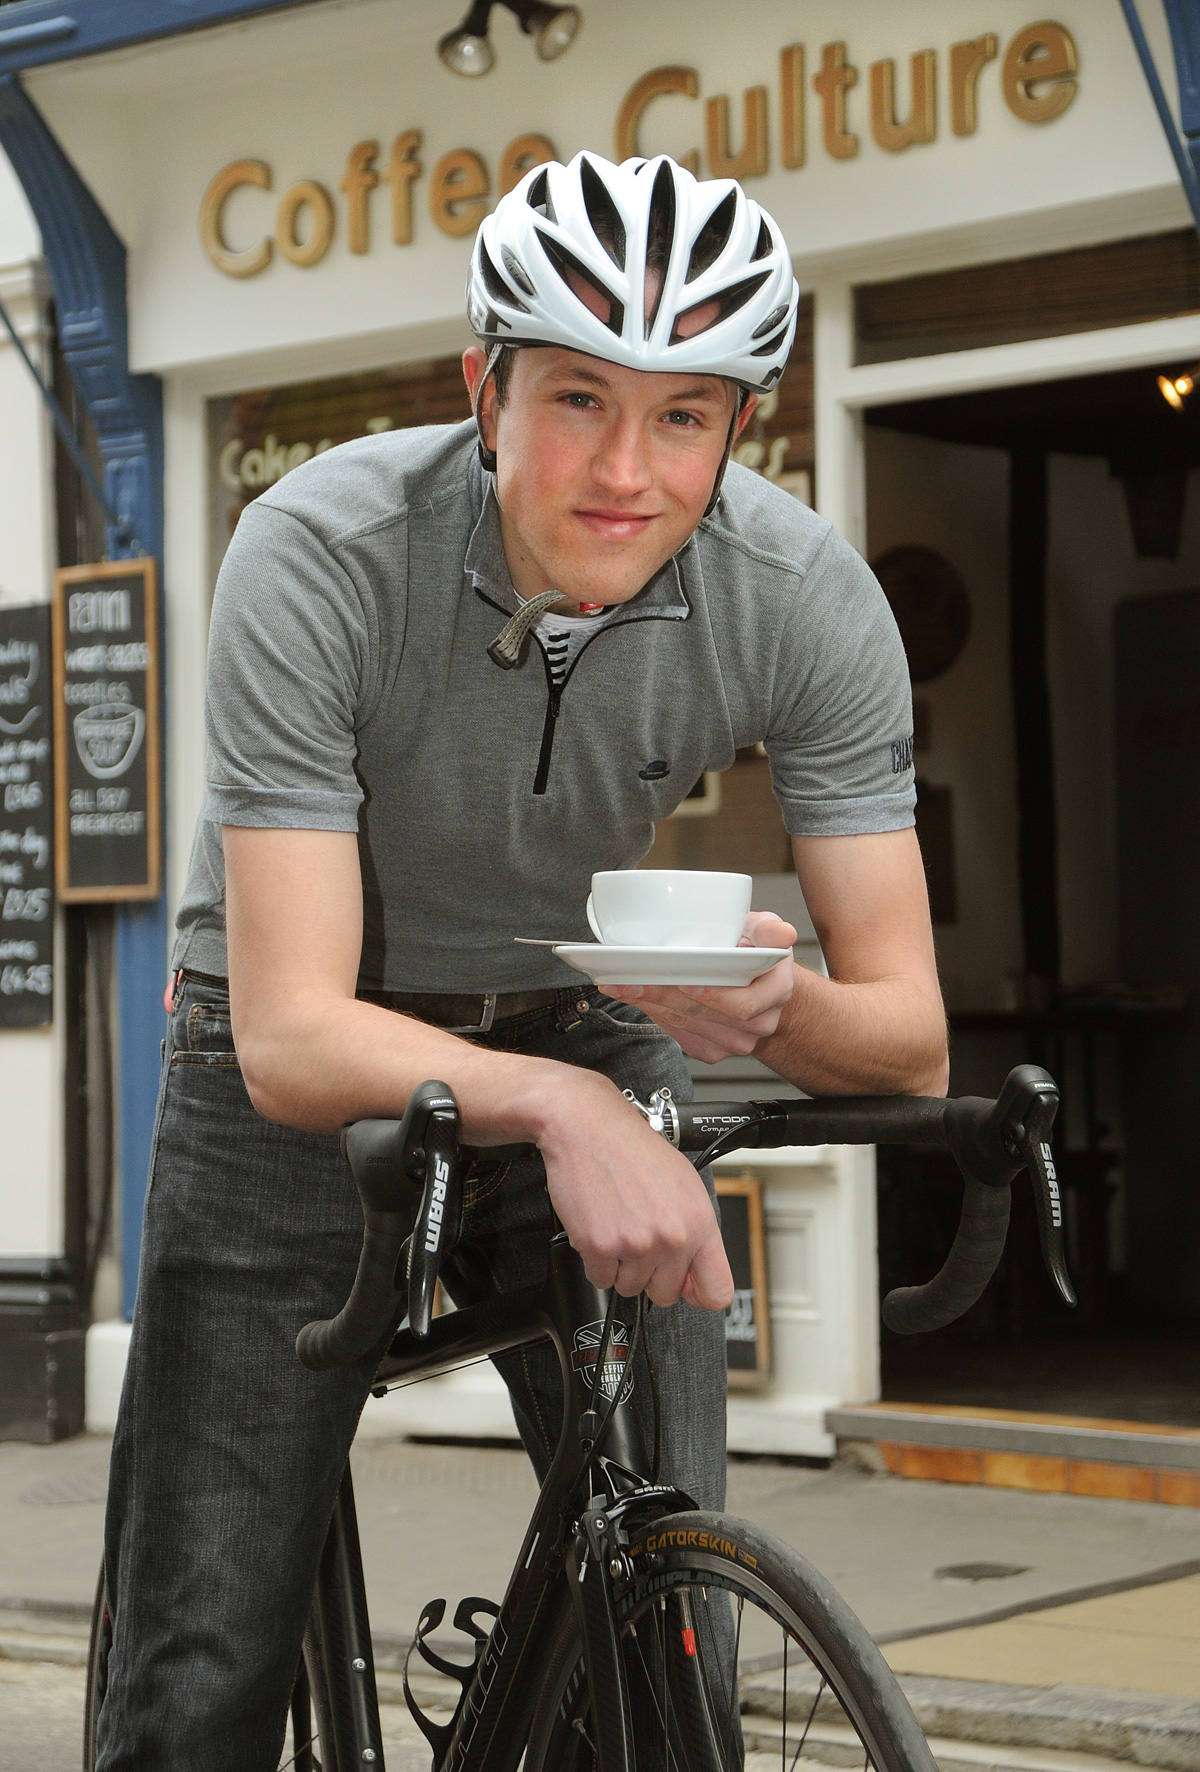 Cyclist Christopher Gargett at Coffee Culture in York